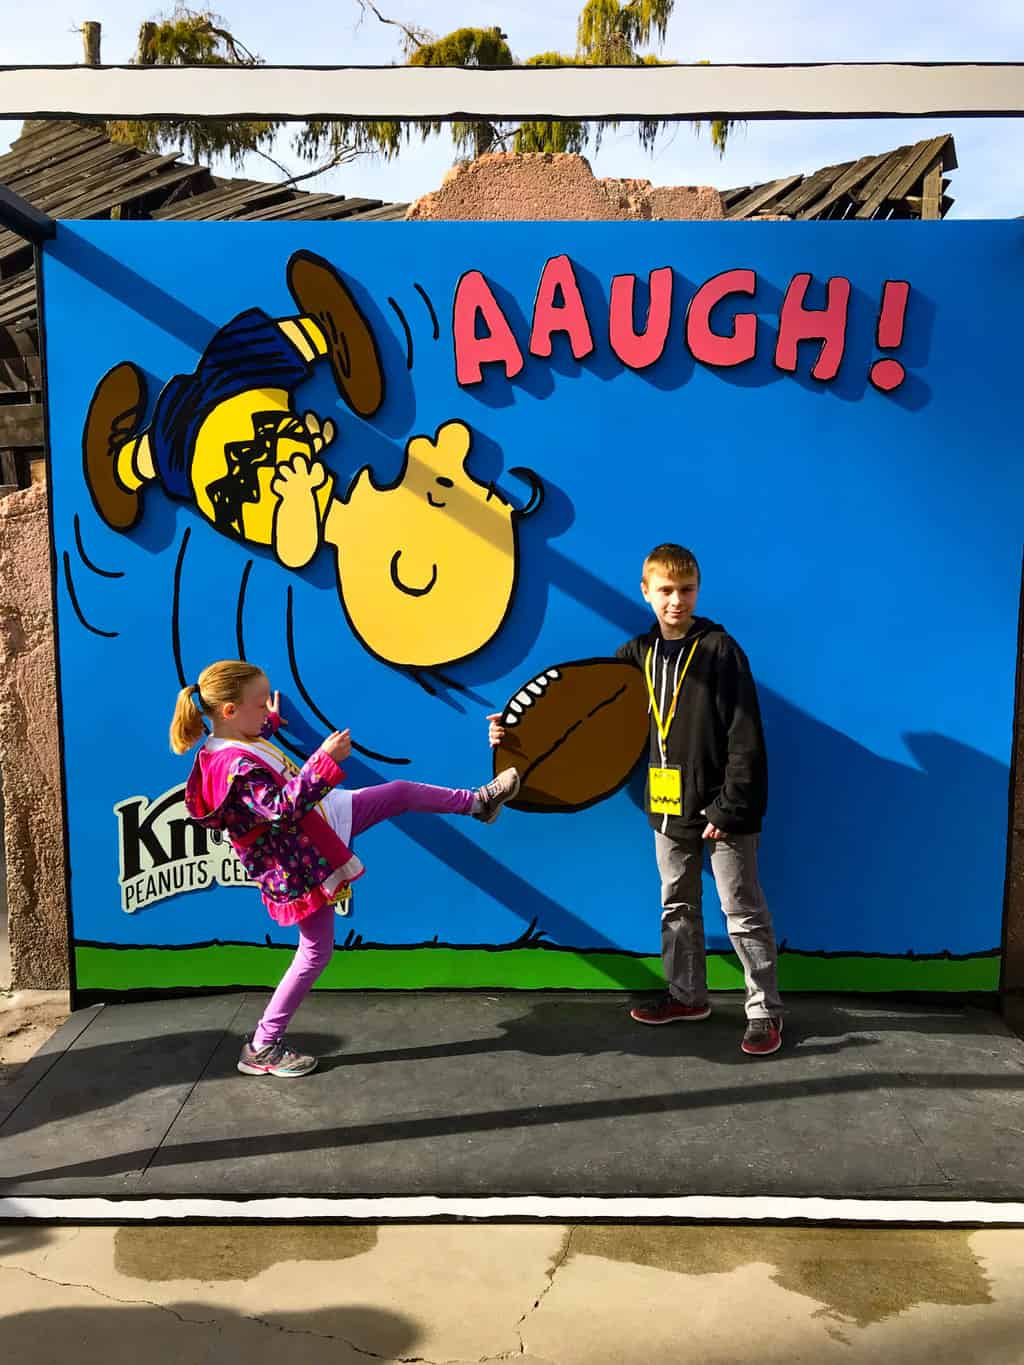 Children kicking Charlie Brown's football during Knott's PEANUTS Celebration.